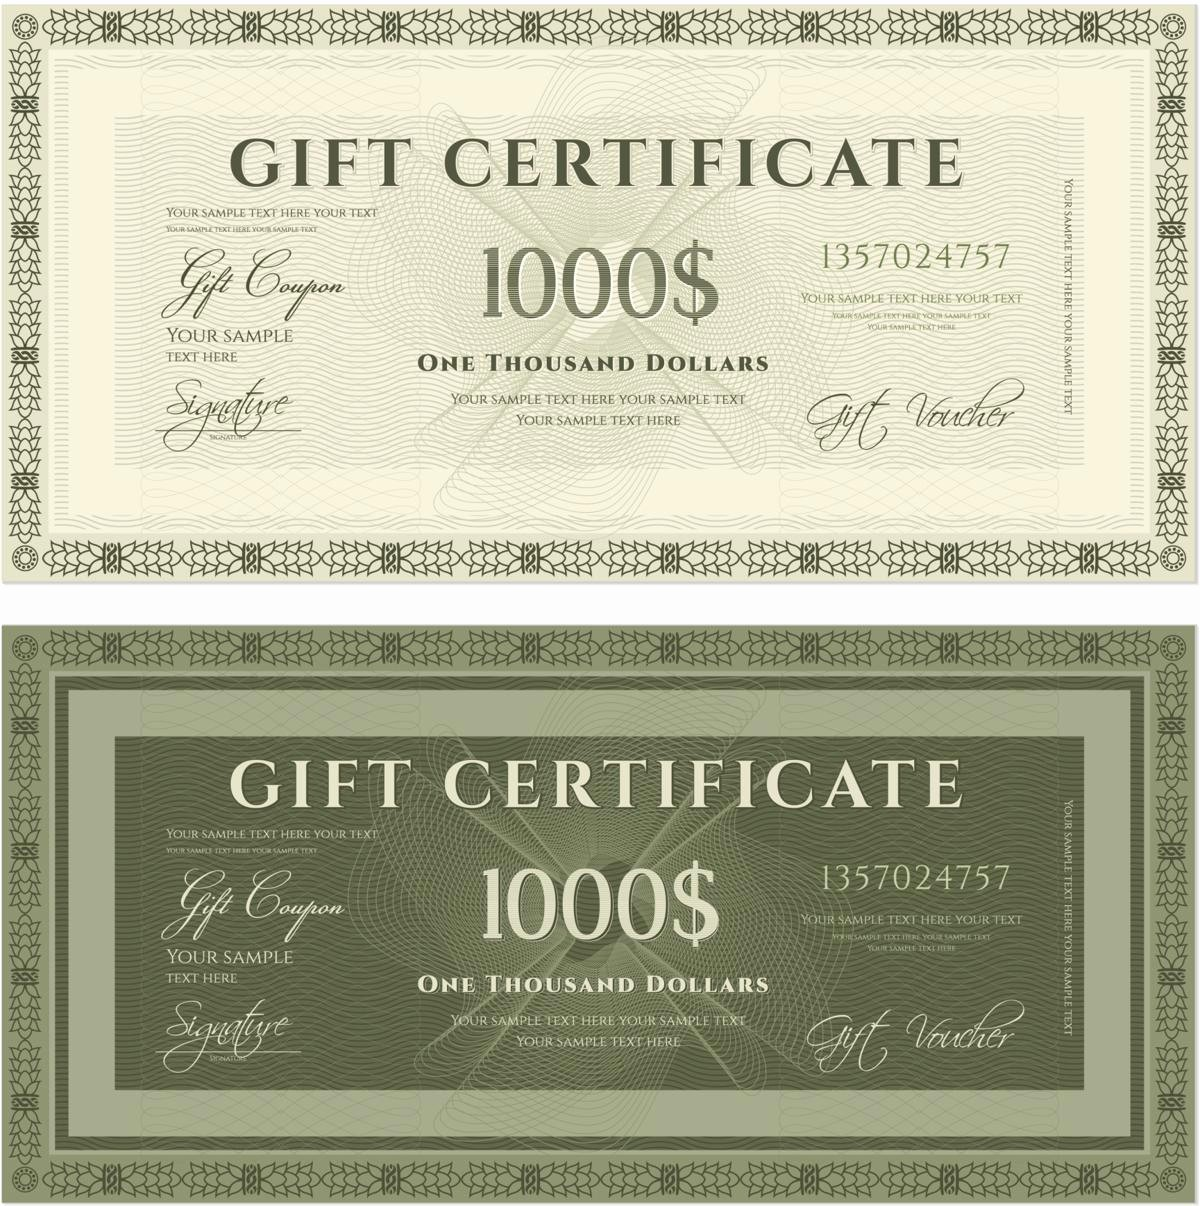 How to Make Gift Certificate Fresh Sample Wordings for Gift Certificates You Ll Want to Copy now